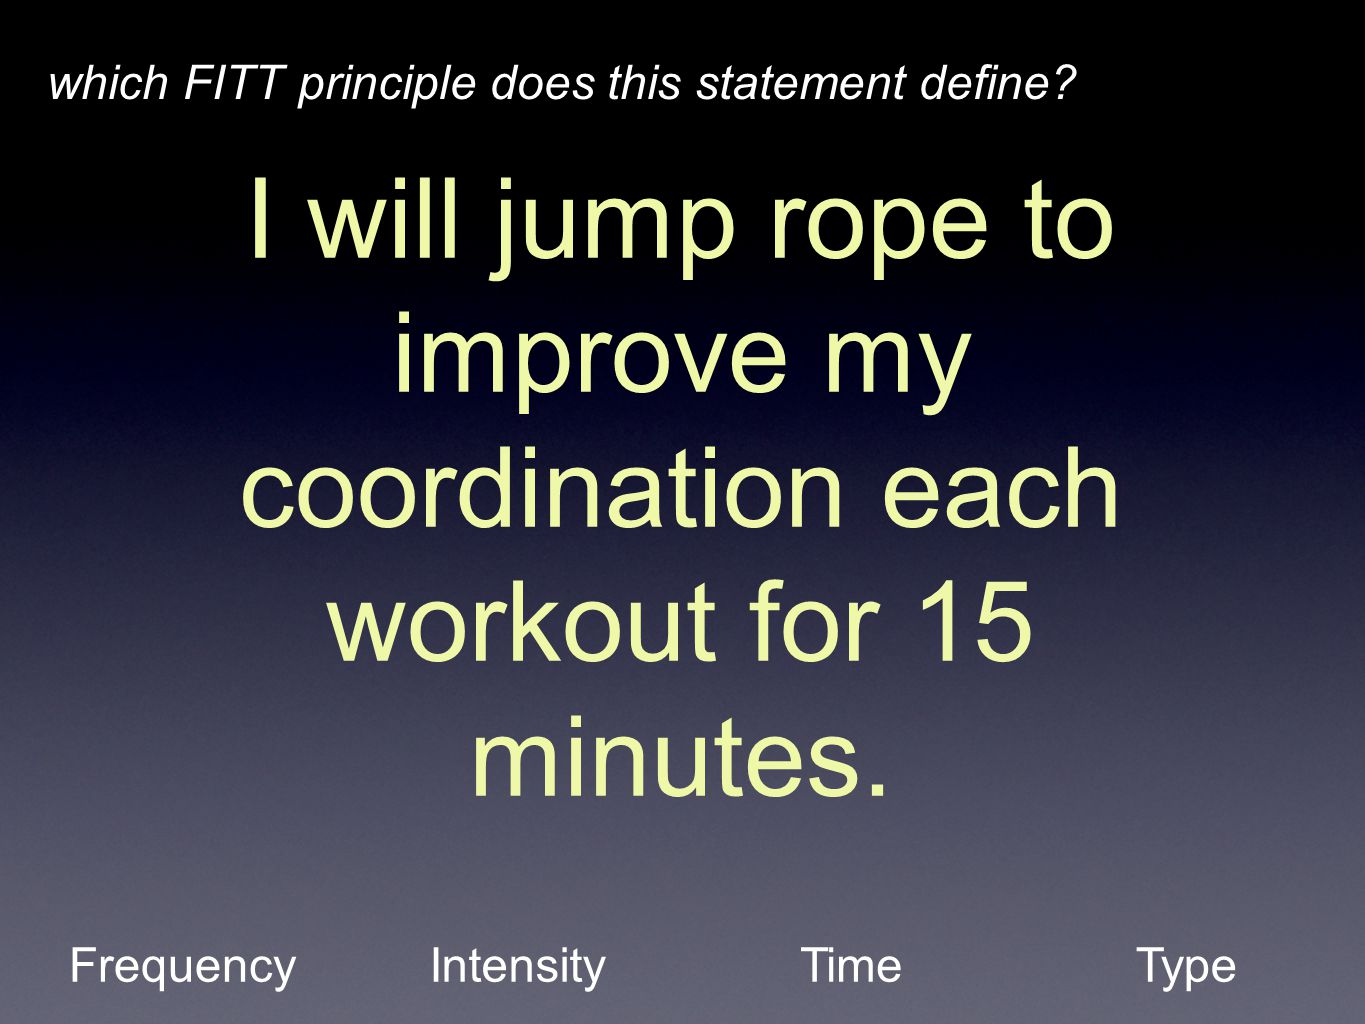 I will jump rope to improve my coordination each workout for 15 minutes.